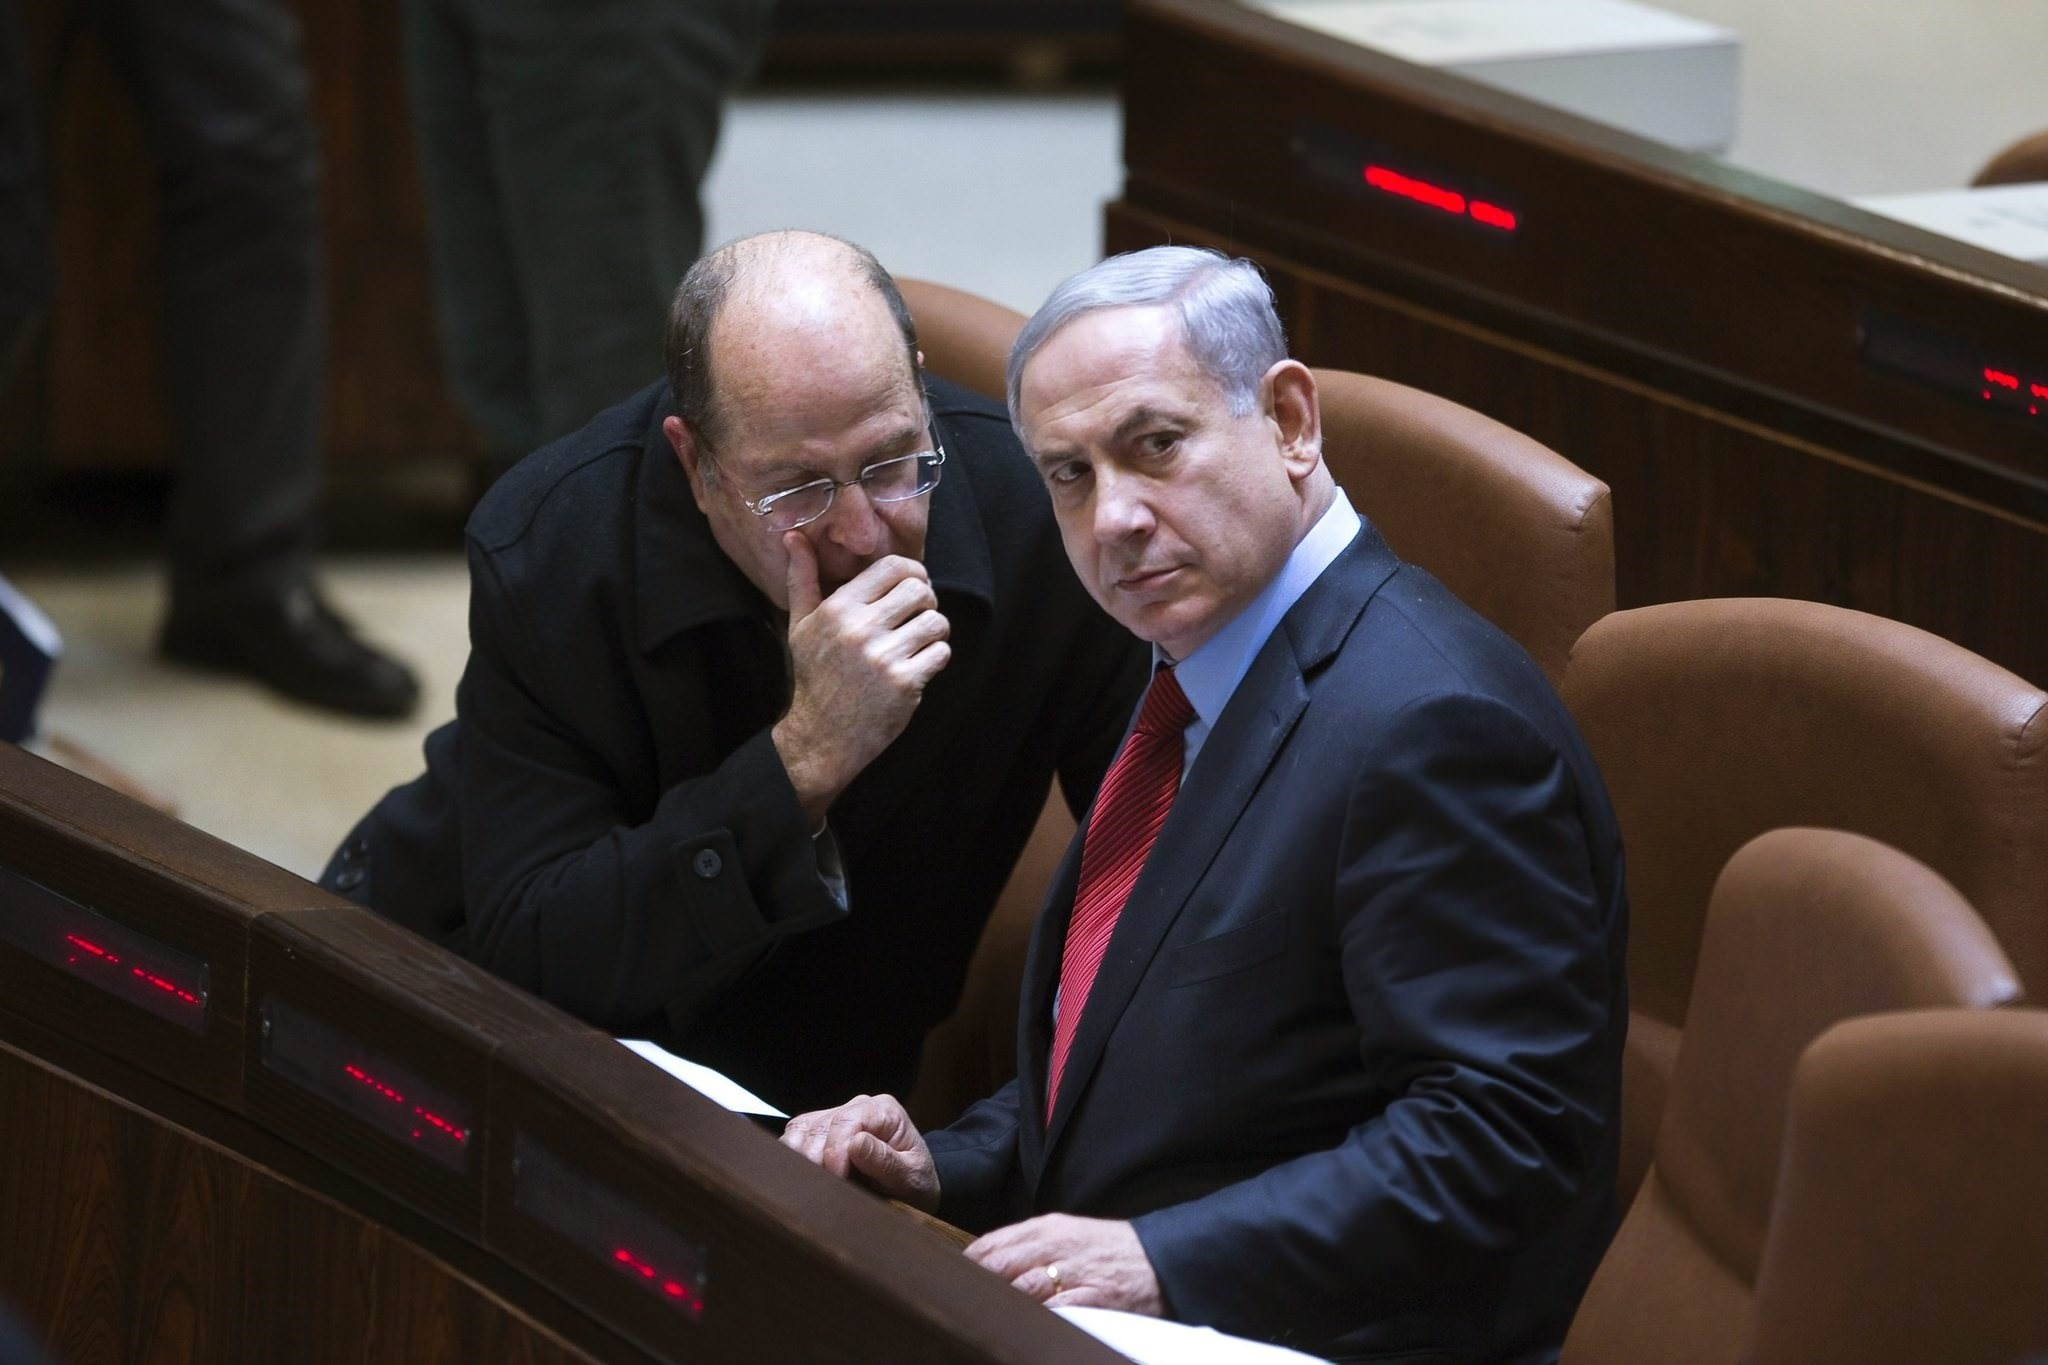 Israel's Defence Minister Moshe Yaalon (L) speaks with Prime Minister Benjamin Netanyahu during a session of the Knesset, the Israeli parliament, in Jerusalem December 1, 2014. (Reuters Photo)